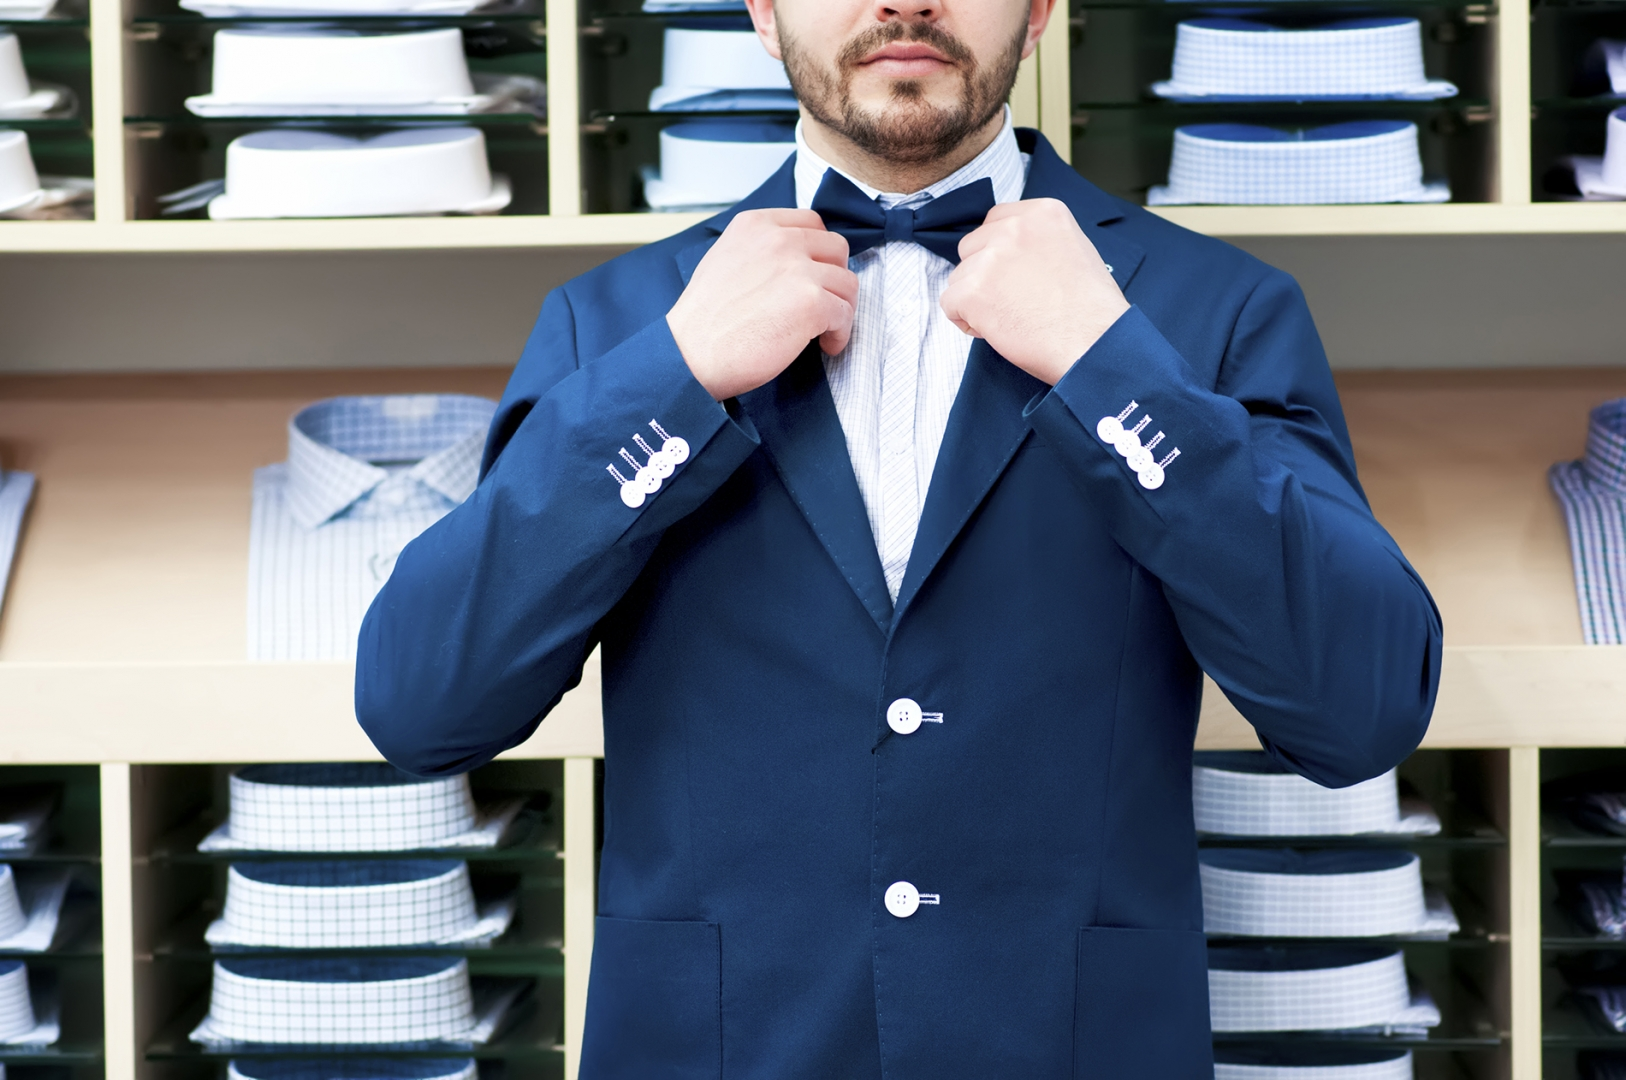 man trying on suit and tying tie